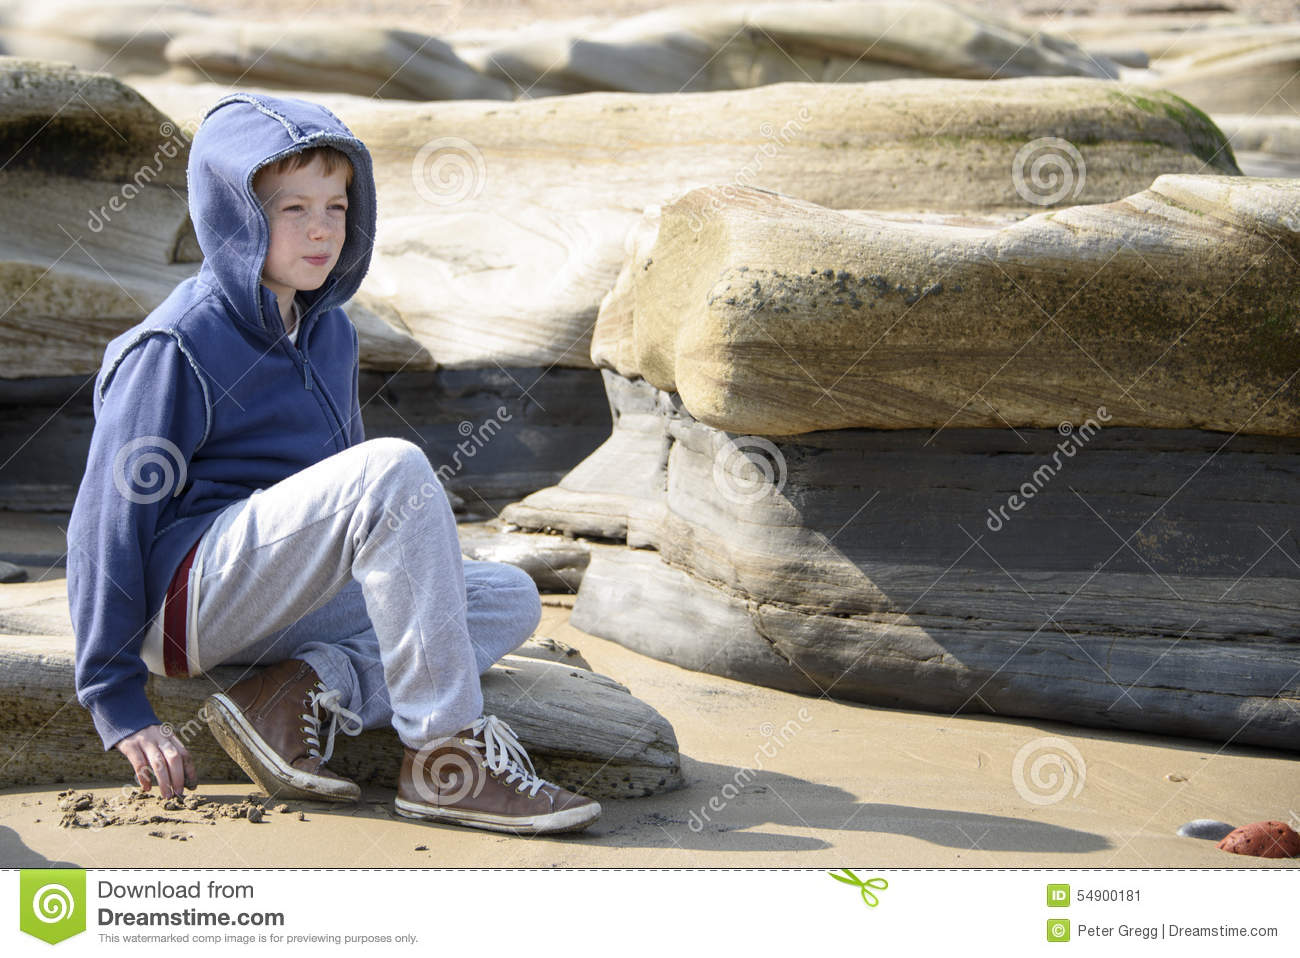 Boy sitting on rocks